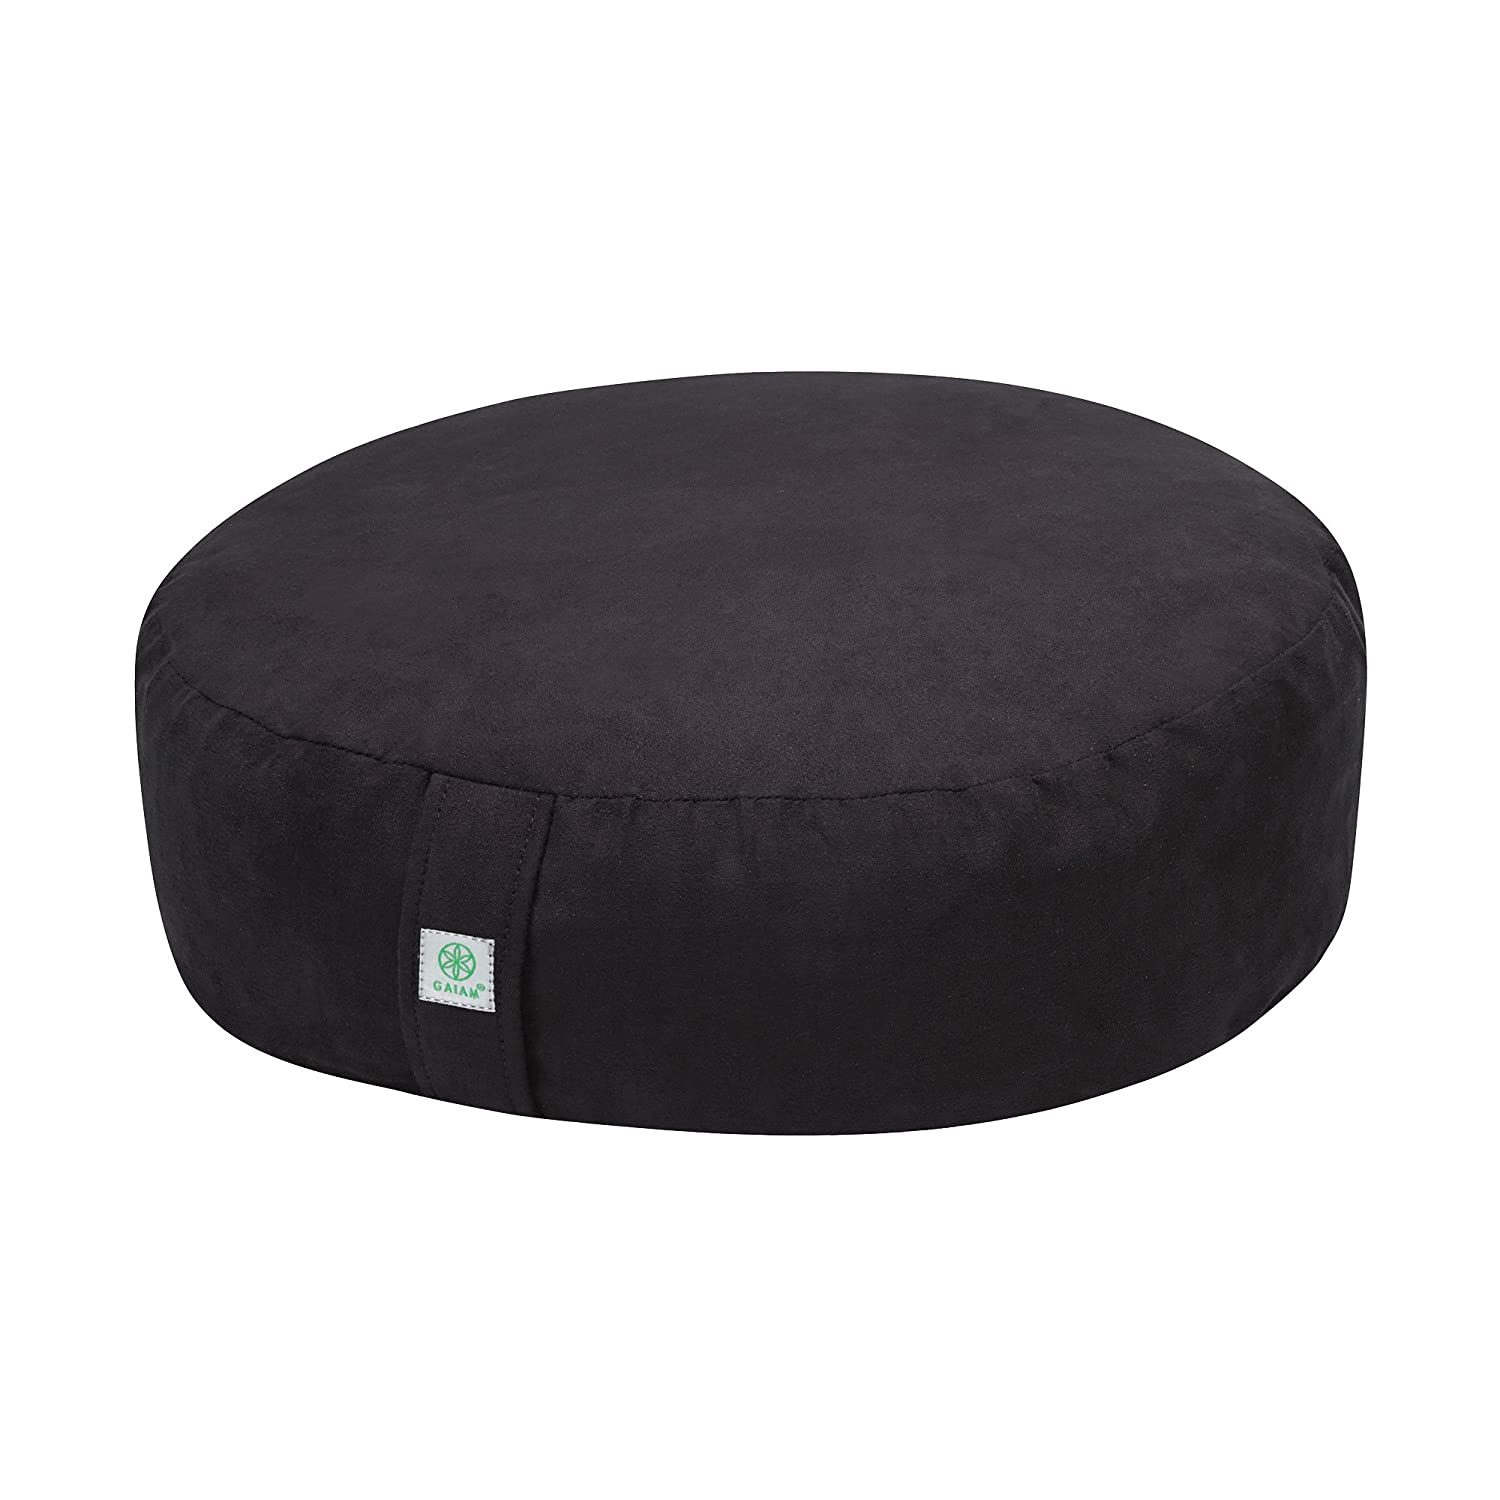 Top 5 Best Meditation Cushion Reviews in 2020 1